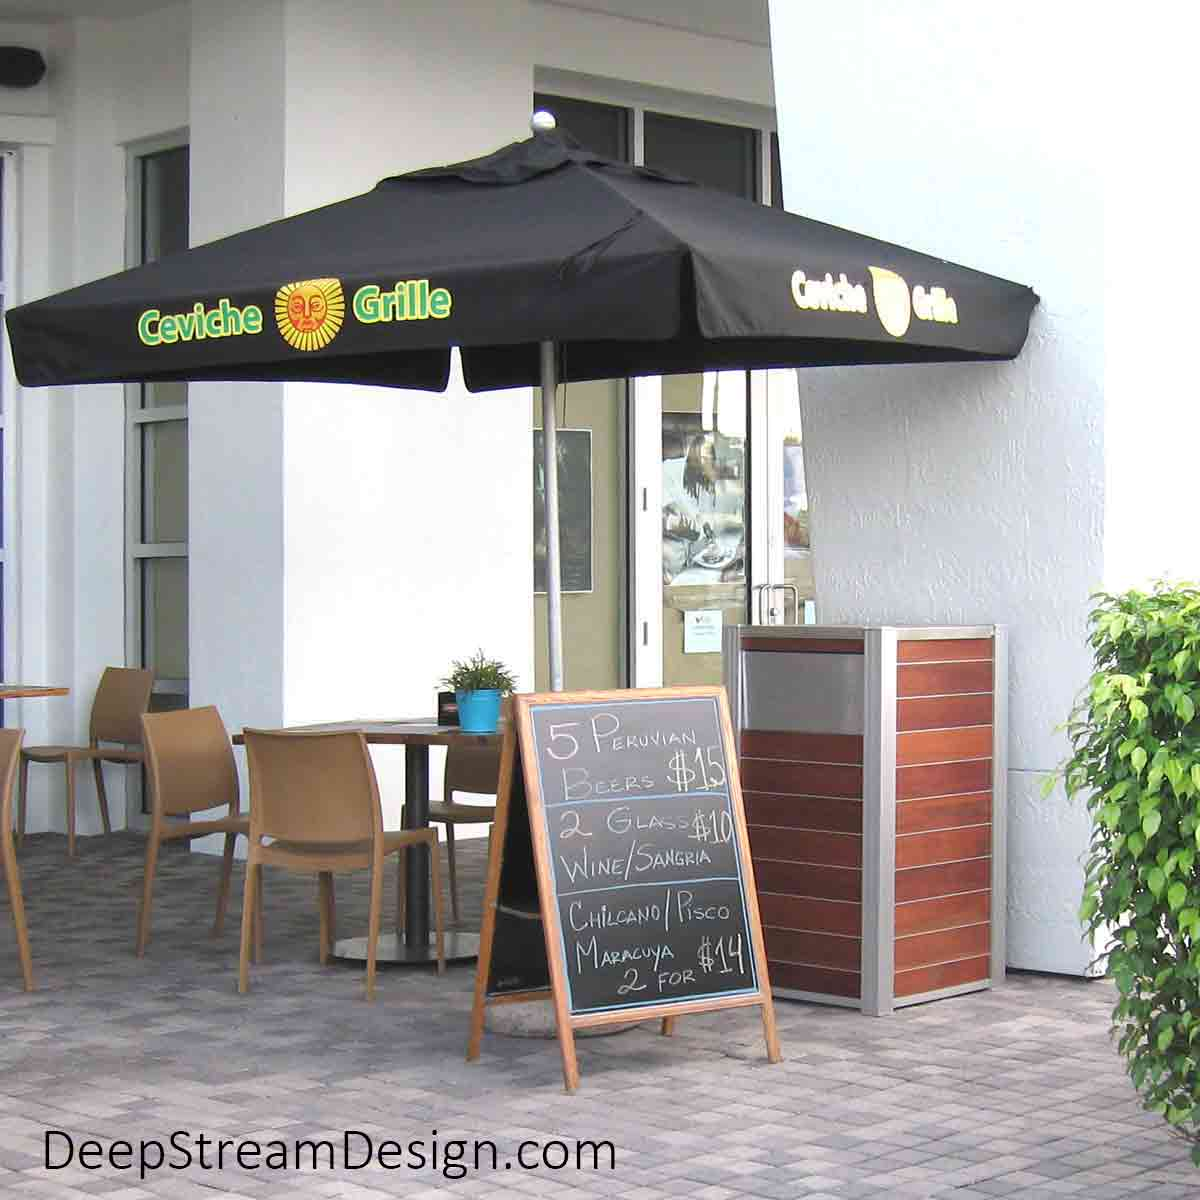 An Oahu Modern Commercial Wood Recycling and Trash Bin crafted with Cumaru tropical hardwood, 316 stainless steel lid for bag changes, an aluminum push flap matching the silver anodized aluminum leg, fit the modern décor of an upscale shopping center sidewalk Ceviche Restaurant with aluminum and leather chairs and tables under black umbrellas.